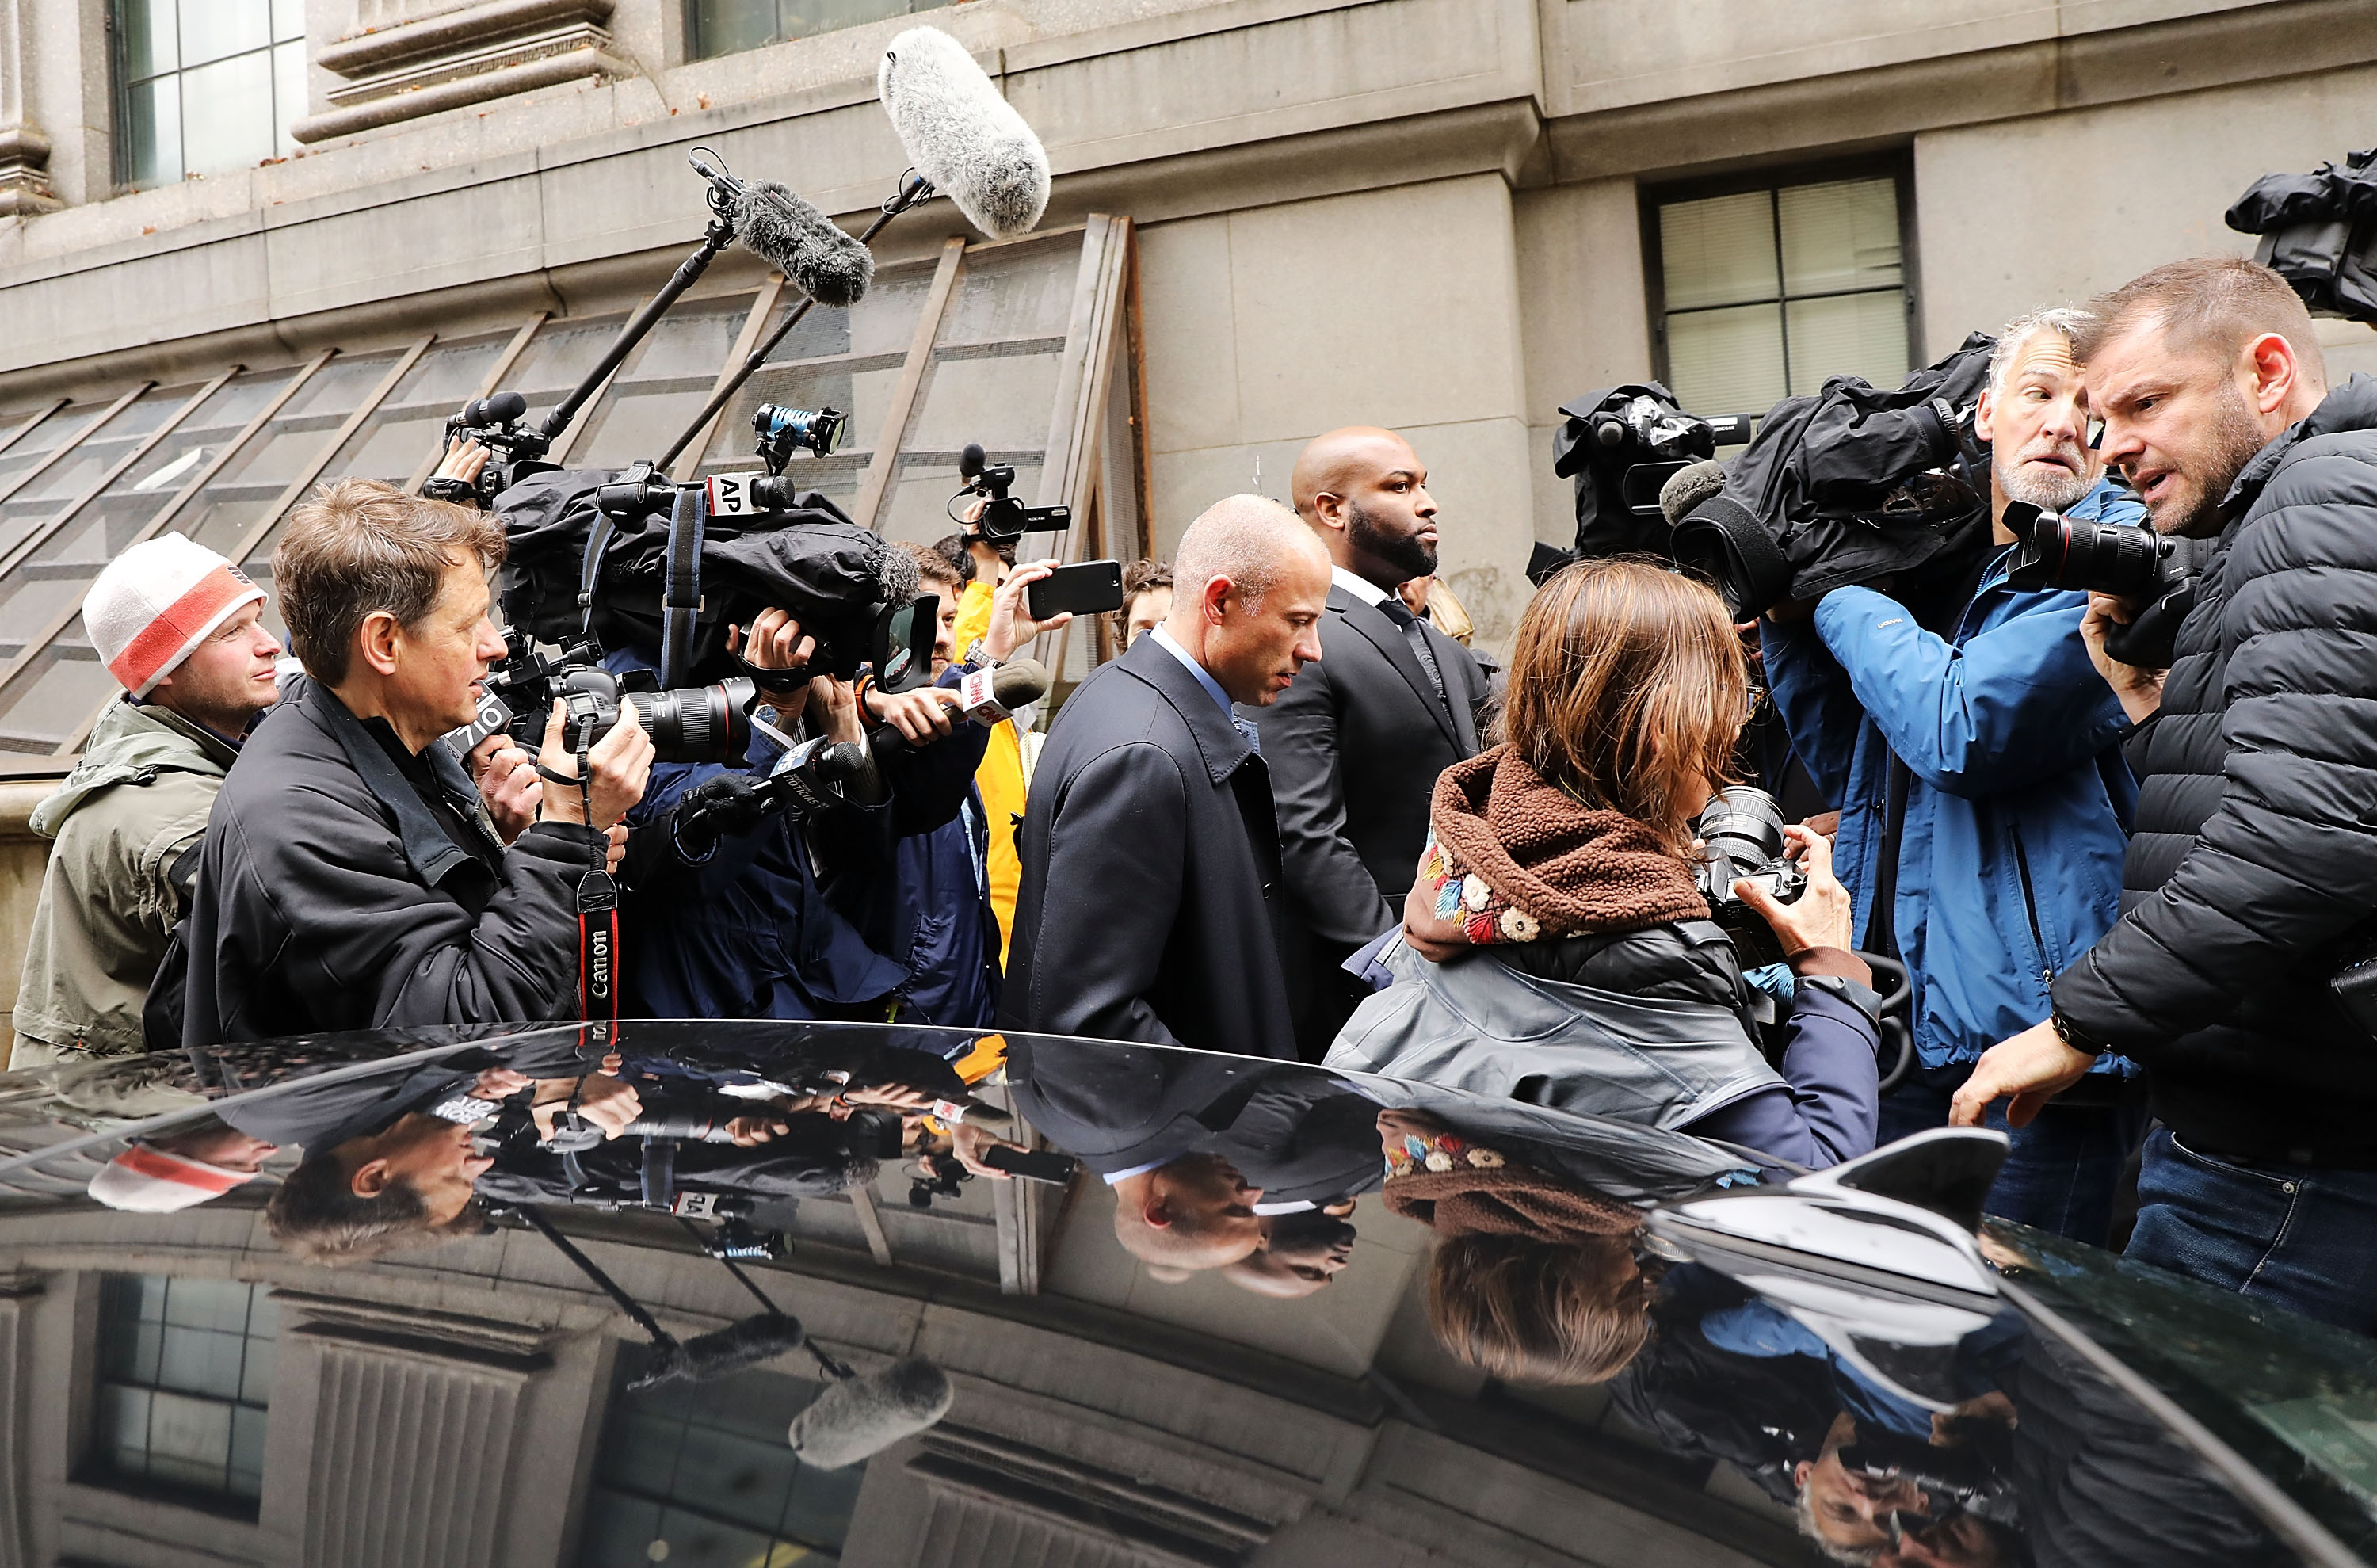 NEW YORK, NY - APRIL 16: Adult-film actress Stormy Daniels' lawyer Michael Avenatti arrives at a court hearing where President Donald Trump's long-time personal attorney Michael Cohen is attending a court hearing on April 16, 2018 in New York City. Trump's lawyers on Sunday night asked a federal judge to temporarily block prosecutors from reviewing files seized by the FBI from Cohen's offices and hotel room last week. Trump's lawyers have argued that many of the documents are protected by attorney-client privilege. (Photo by Spencer Platt/Getty Images)